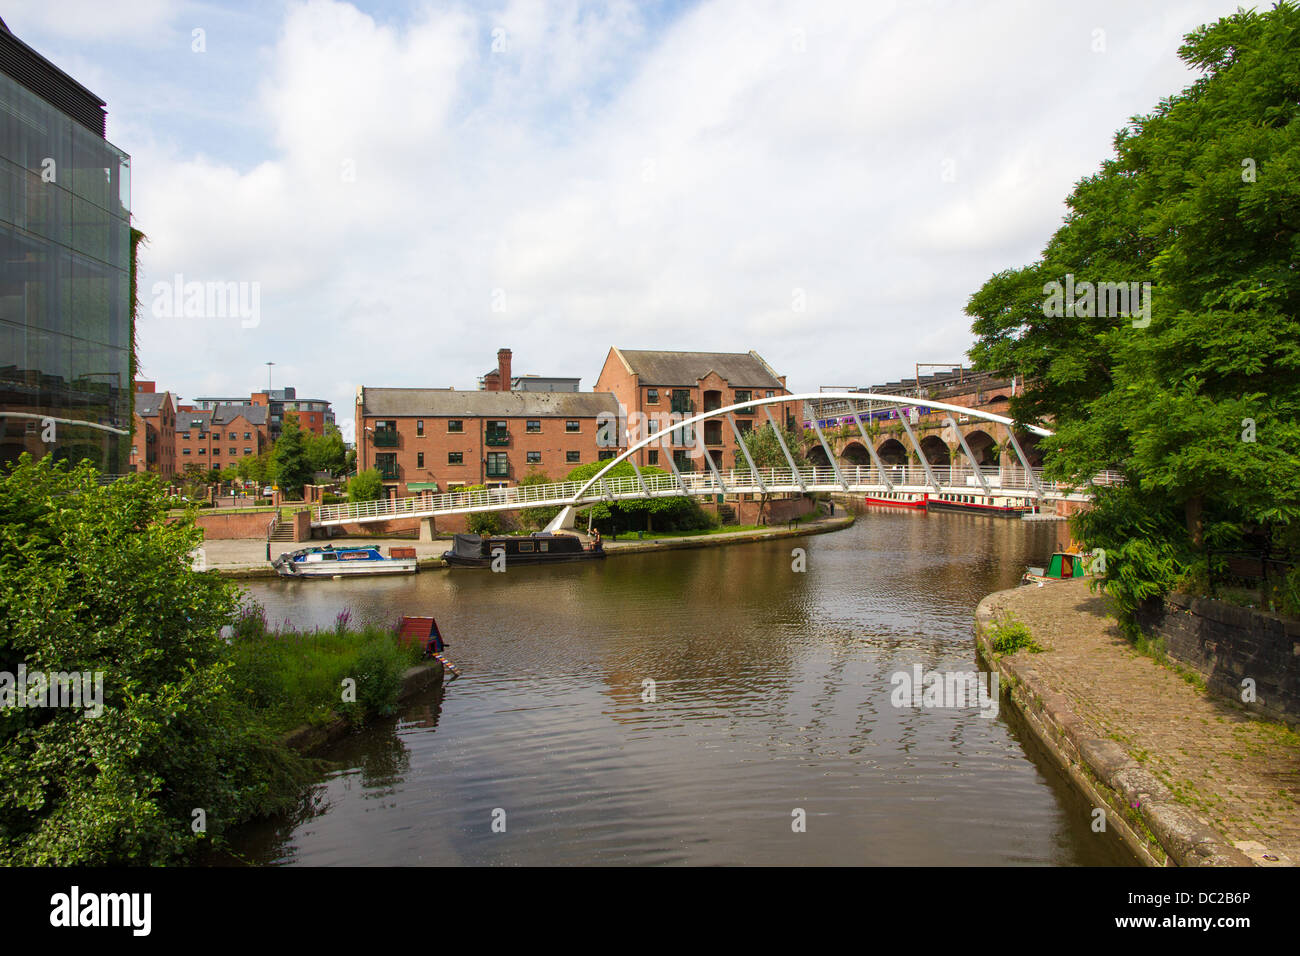 Bridgewater Canal in Castlefield, Manchester with Whitby and Bird Merchants Bridge - Stock Image